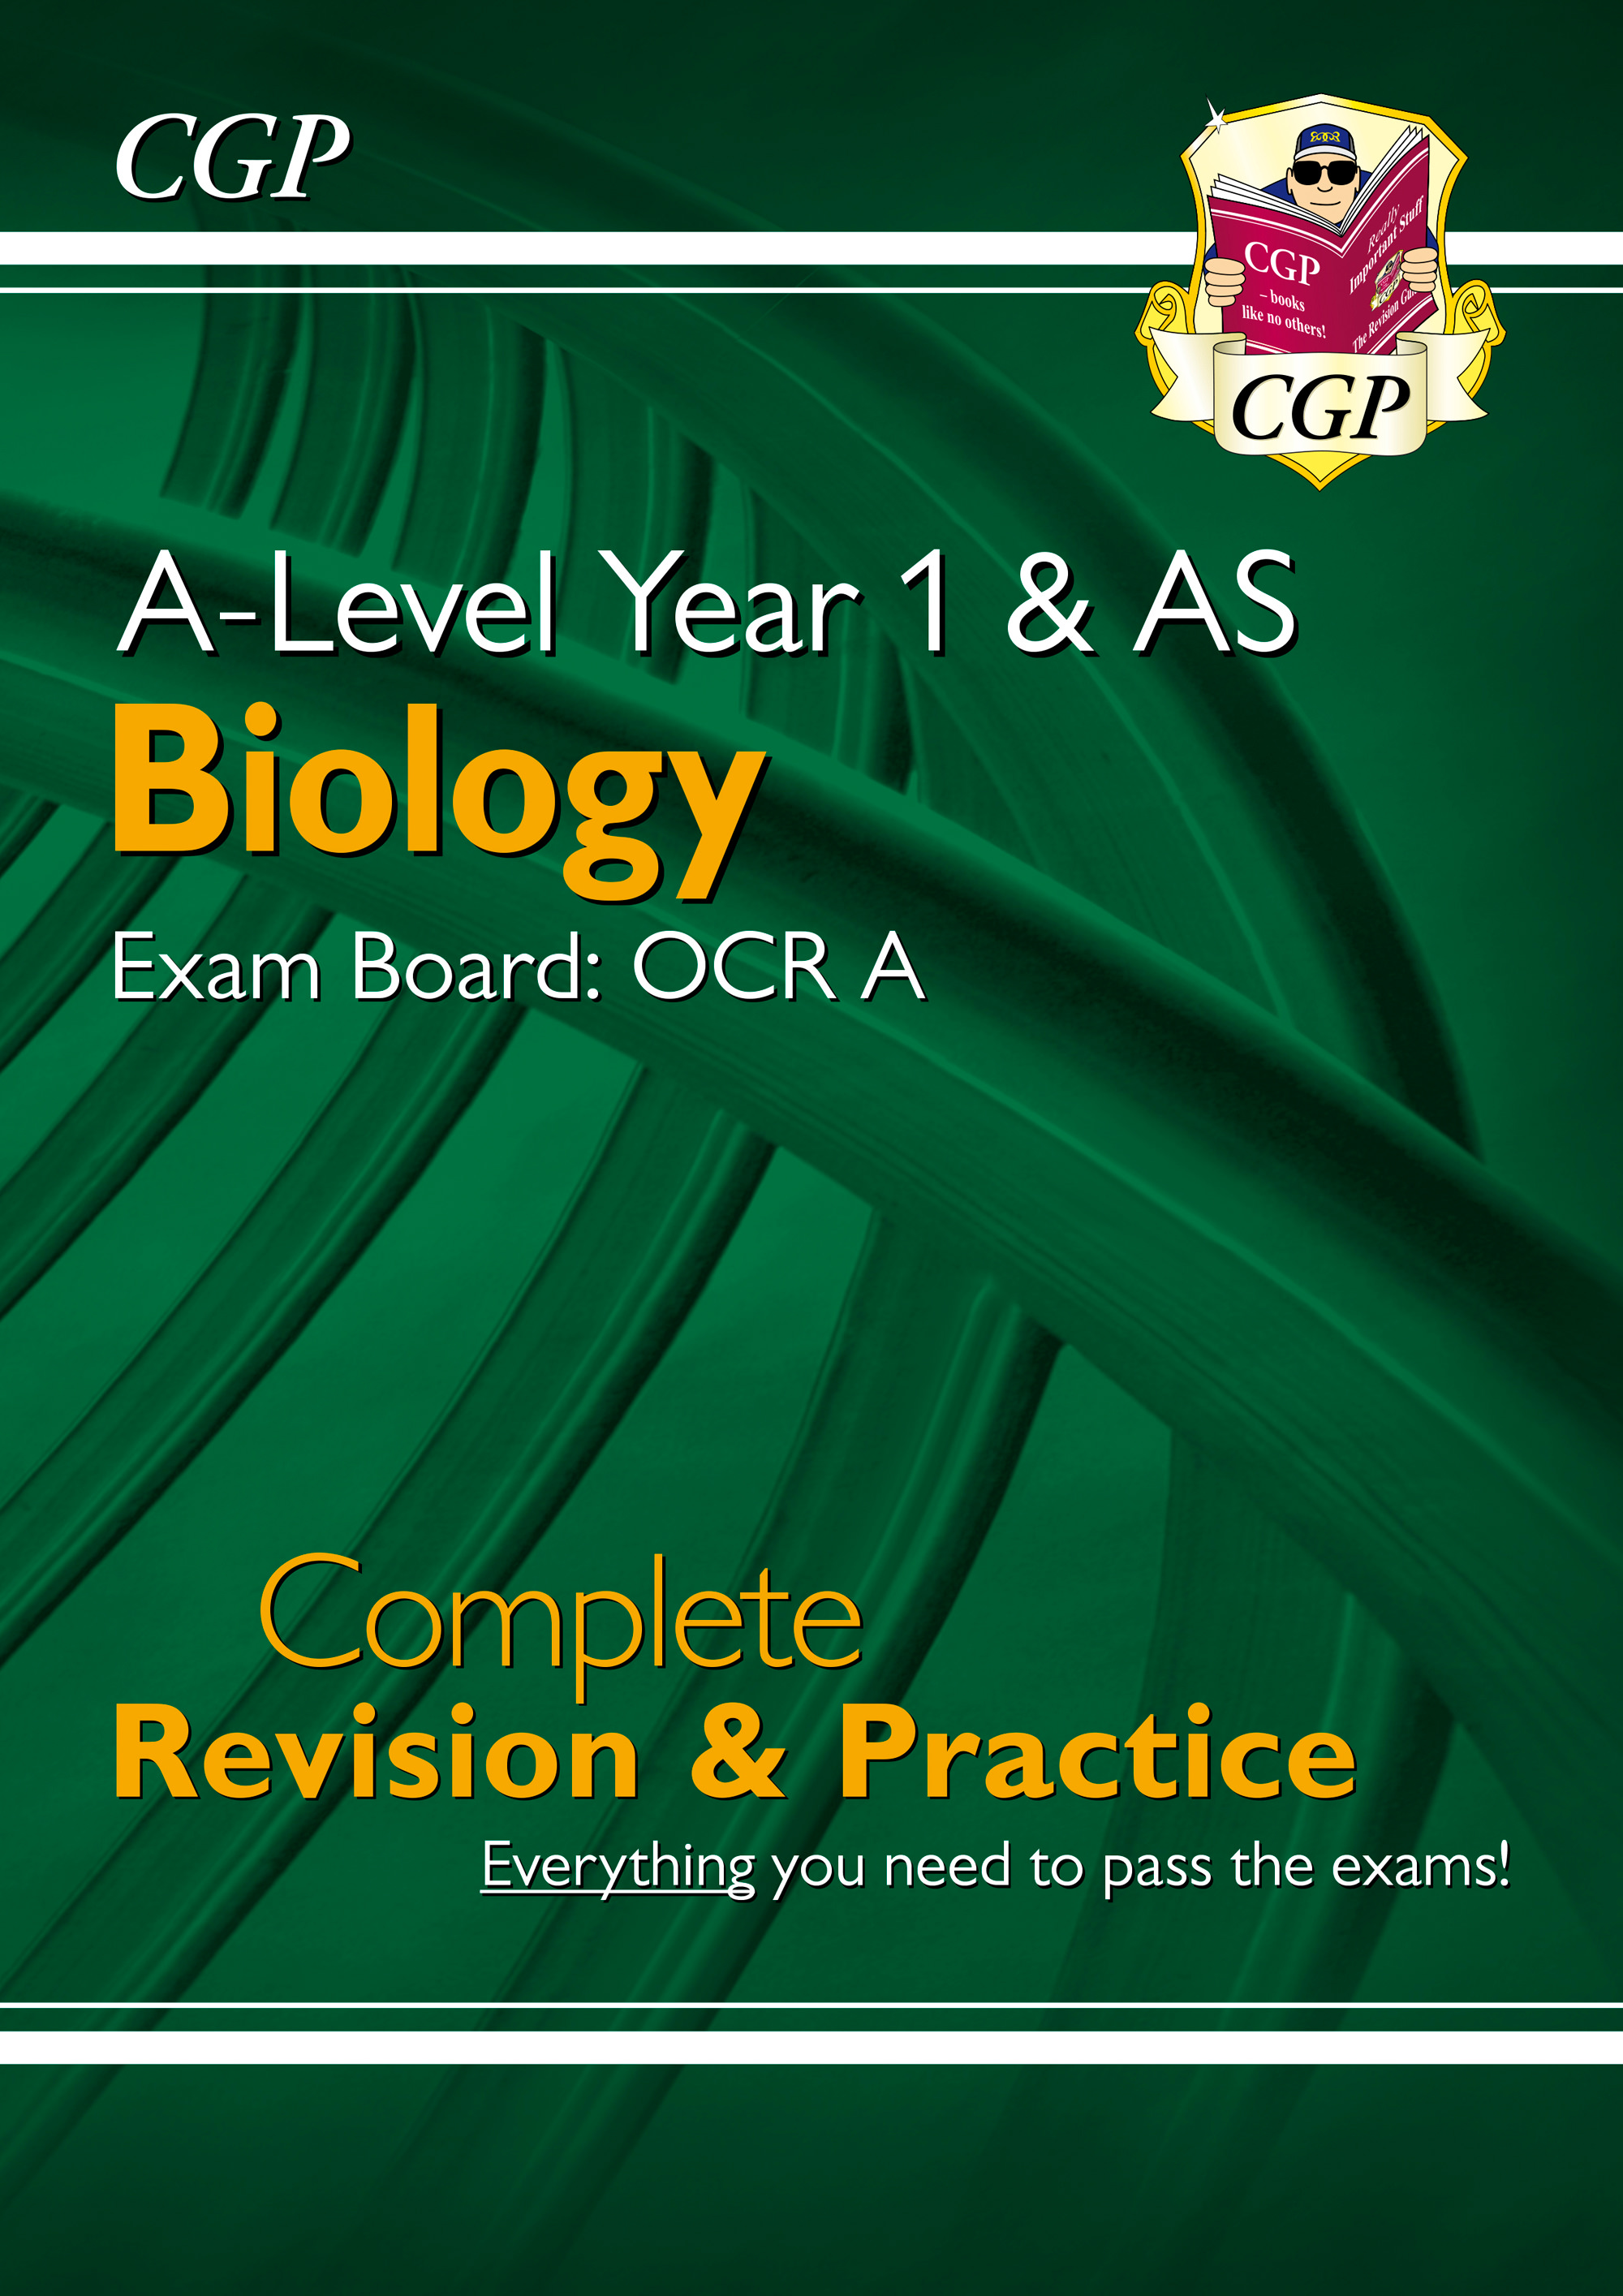 BRAR55DK - New A-Level Biology: OCR A Year 1 & AS Complete Revision & Practice